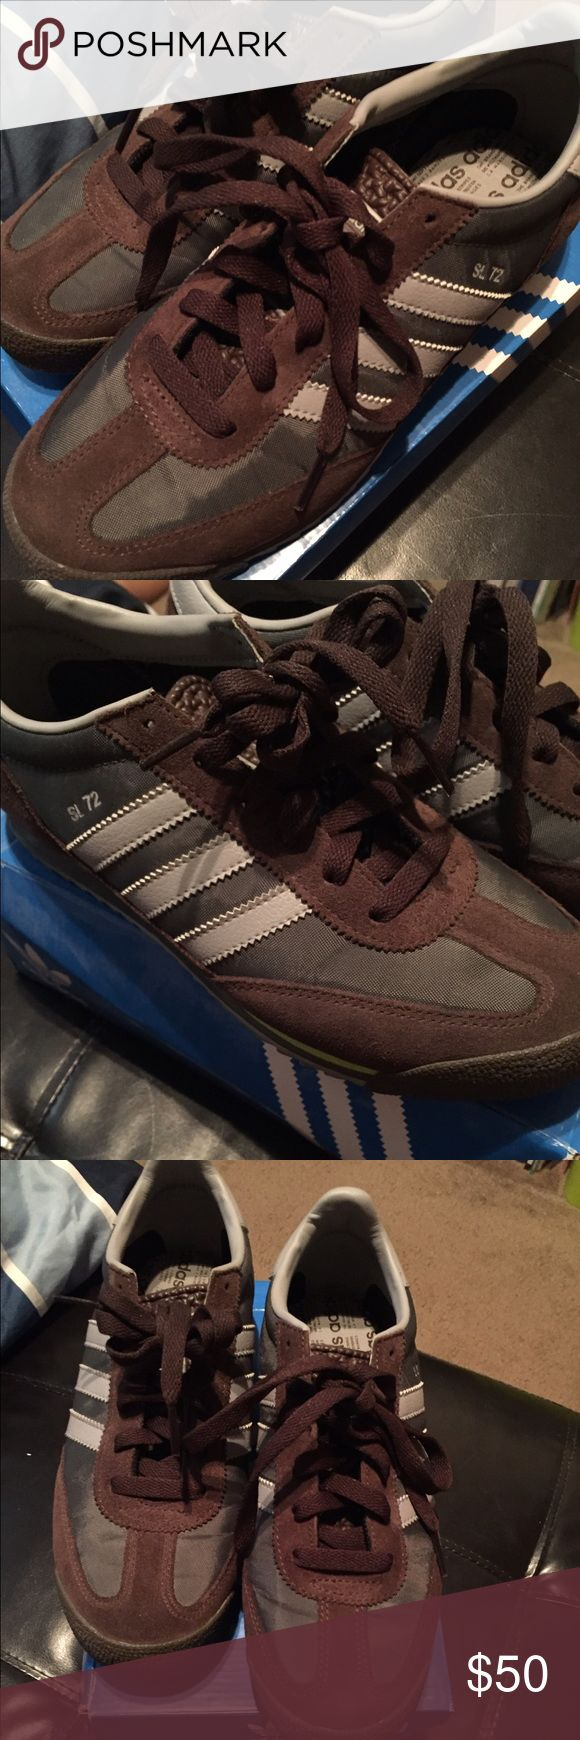 🍃🍀🌿PRELOVED❤️WOMENS ADIDAS CONCORD ROUND 7.5 PREOWNED ADIDAS ORIGINALS CONCORD ROUND IN SIZE 7.5 USED ONCE ONLY Adidas Shoes Athletic Shoes